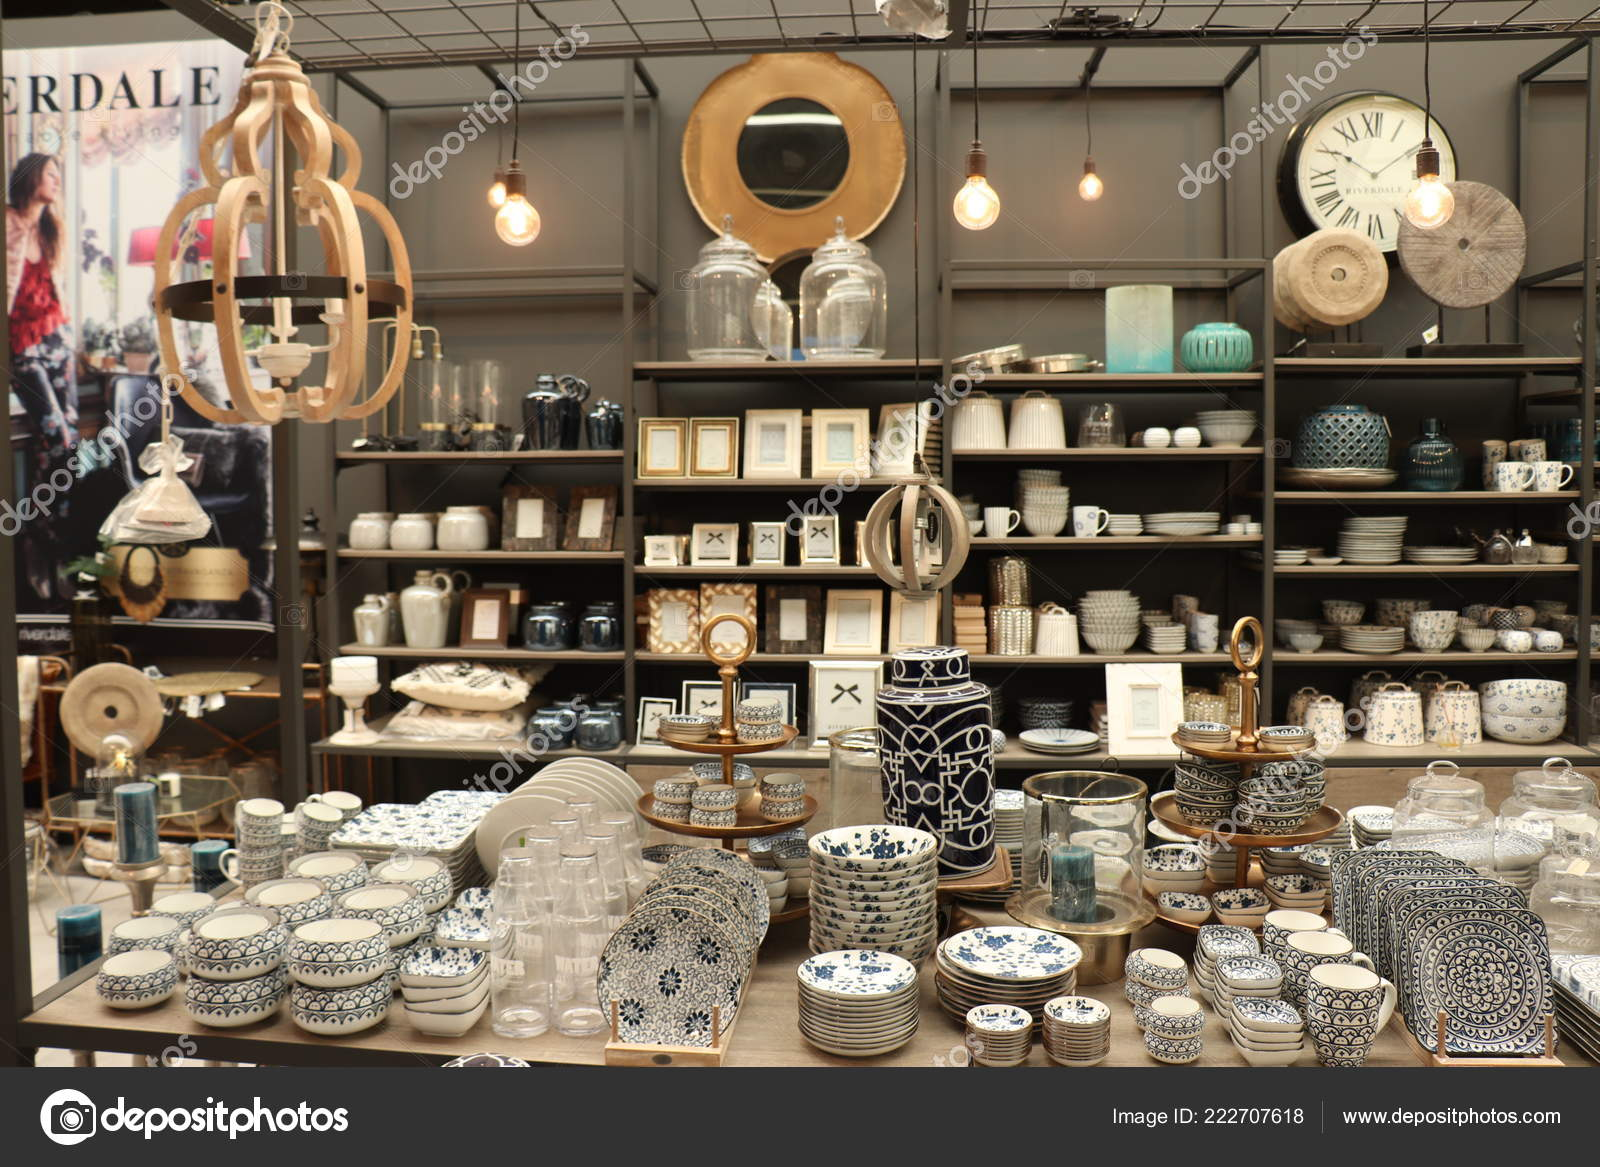 Cruquius, The Netherlands   October 26th 2018: Riverdale Home Accessories  In A Home Decoration Store. Riverdale Is A Dutch Home Decoration And  Lifestyle ...